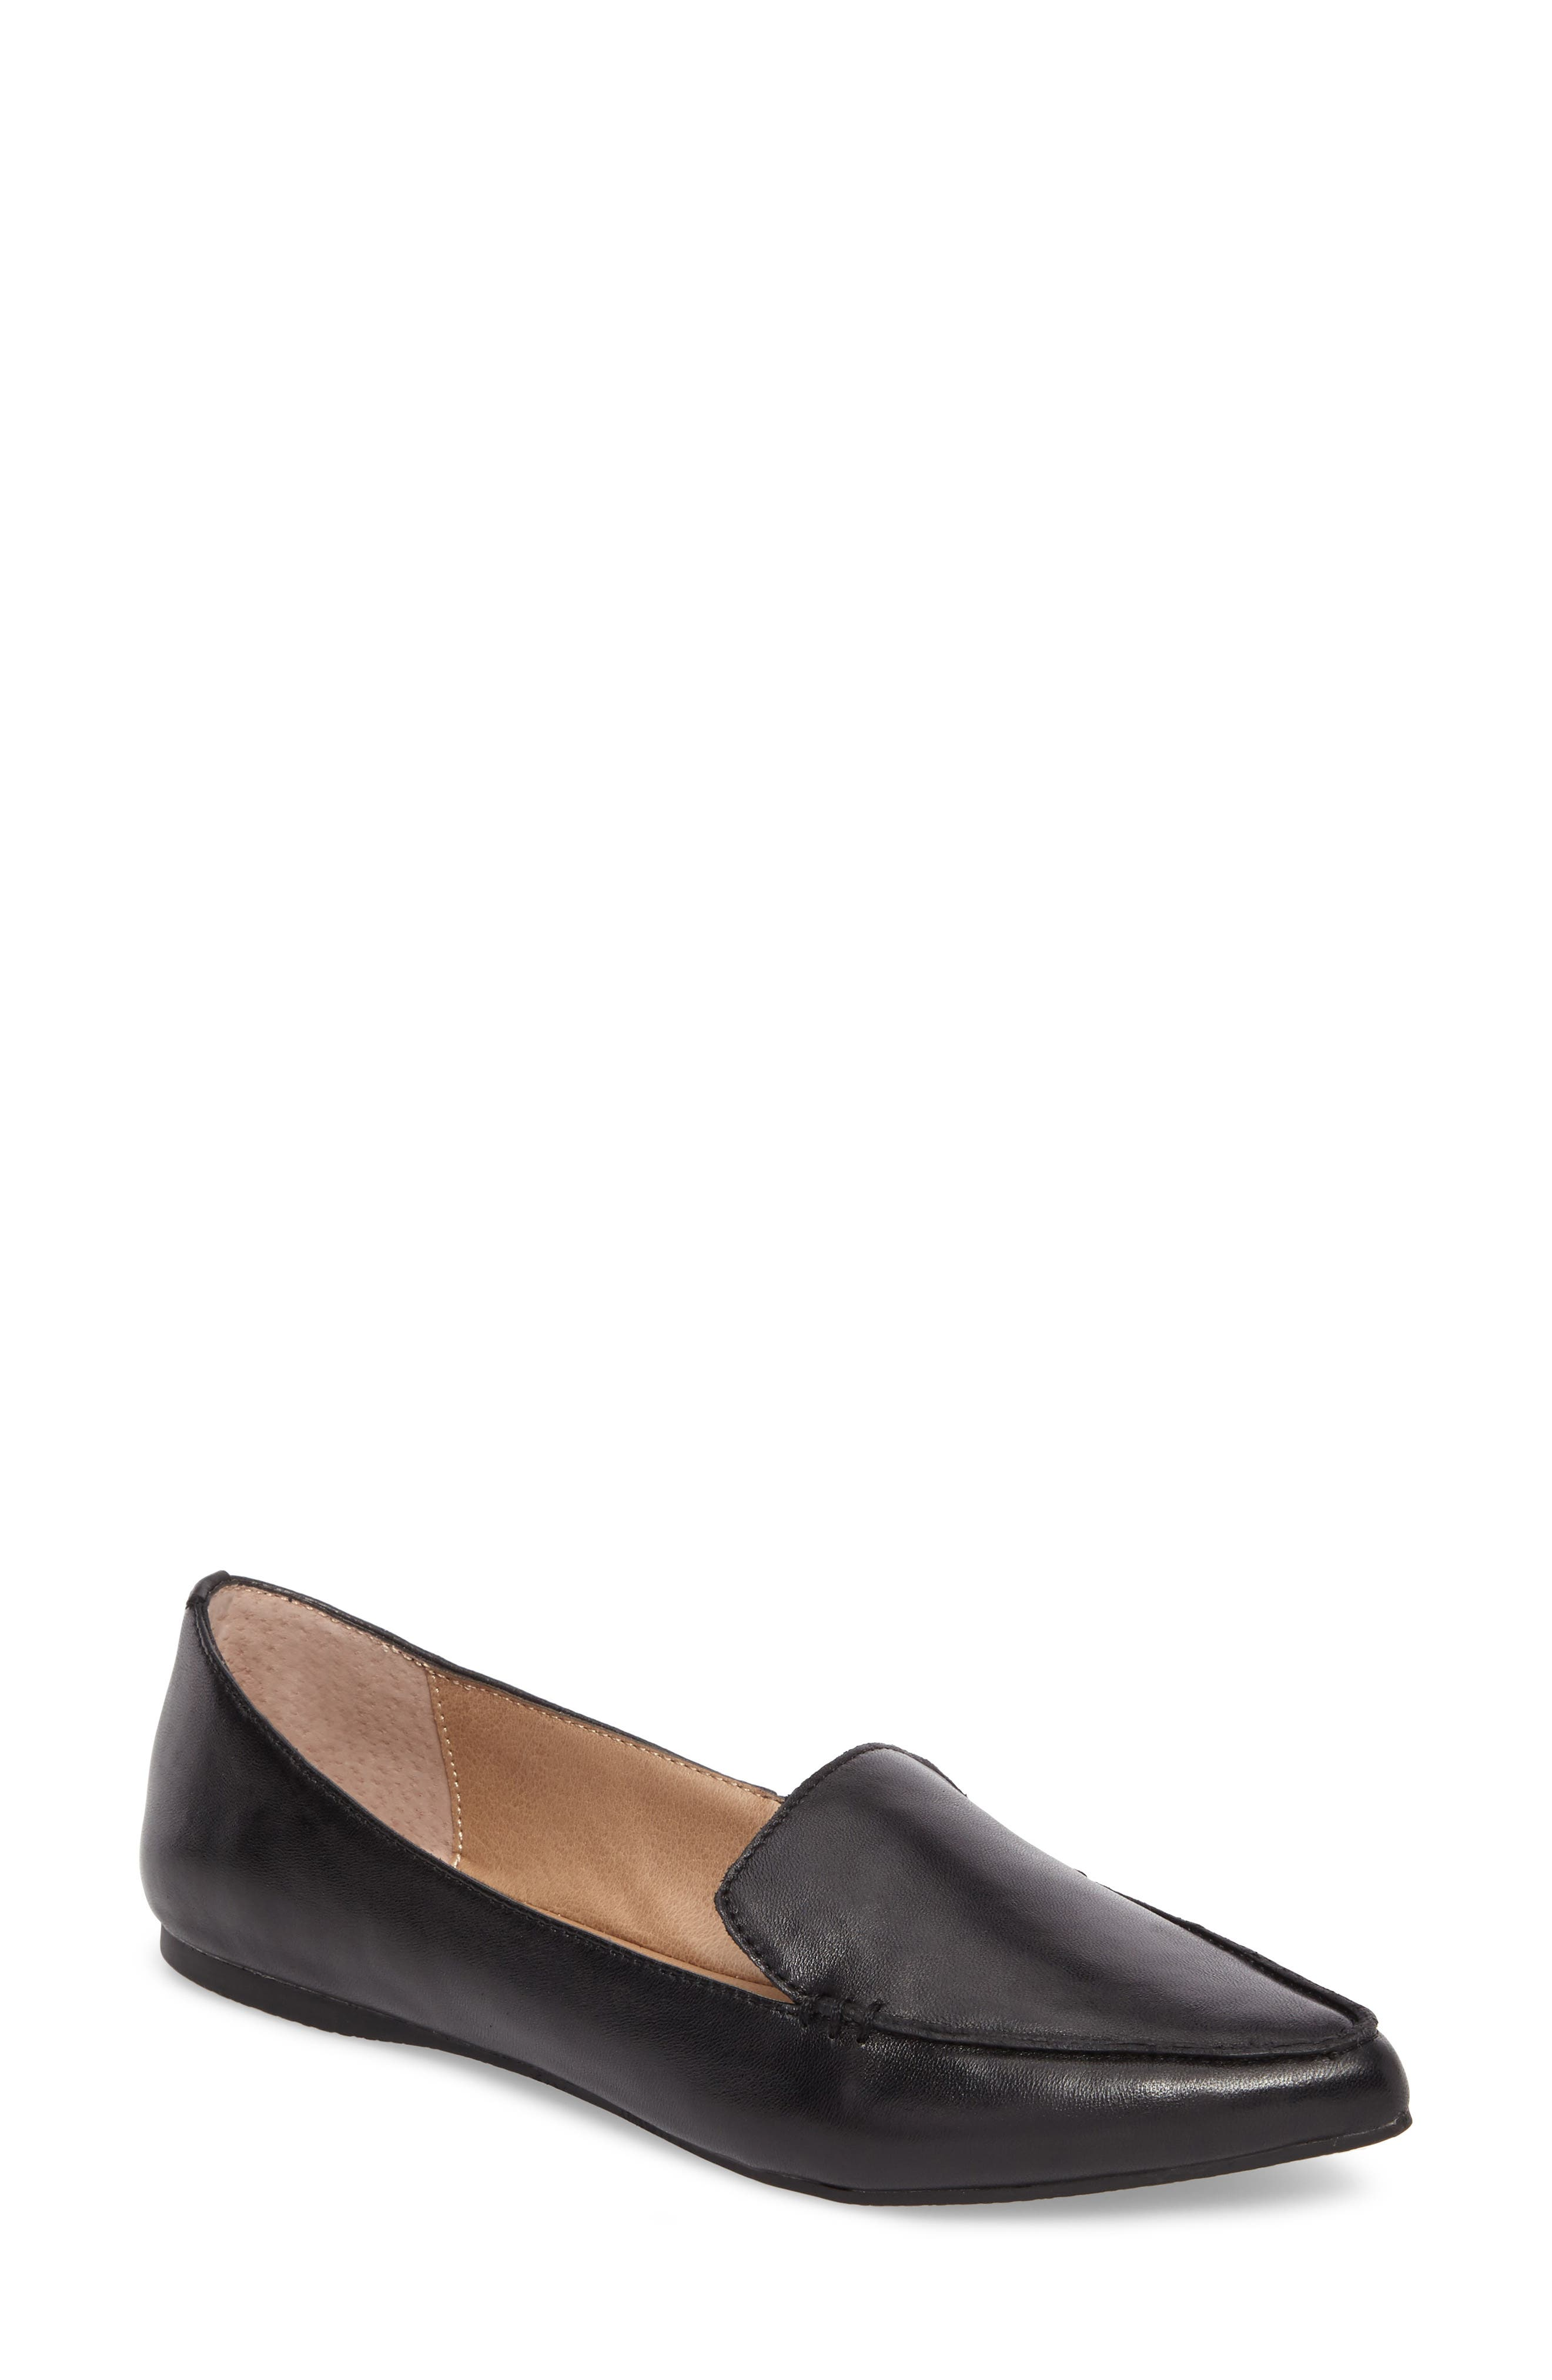 Feather Loafer Flat,                             Main thumbnail 1, color,                             Black Leather